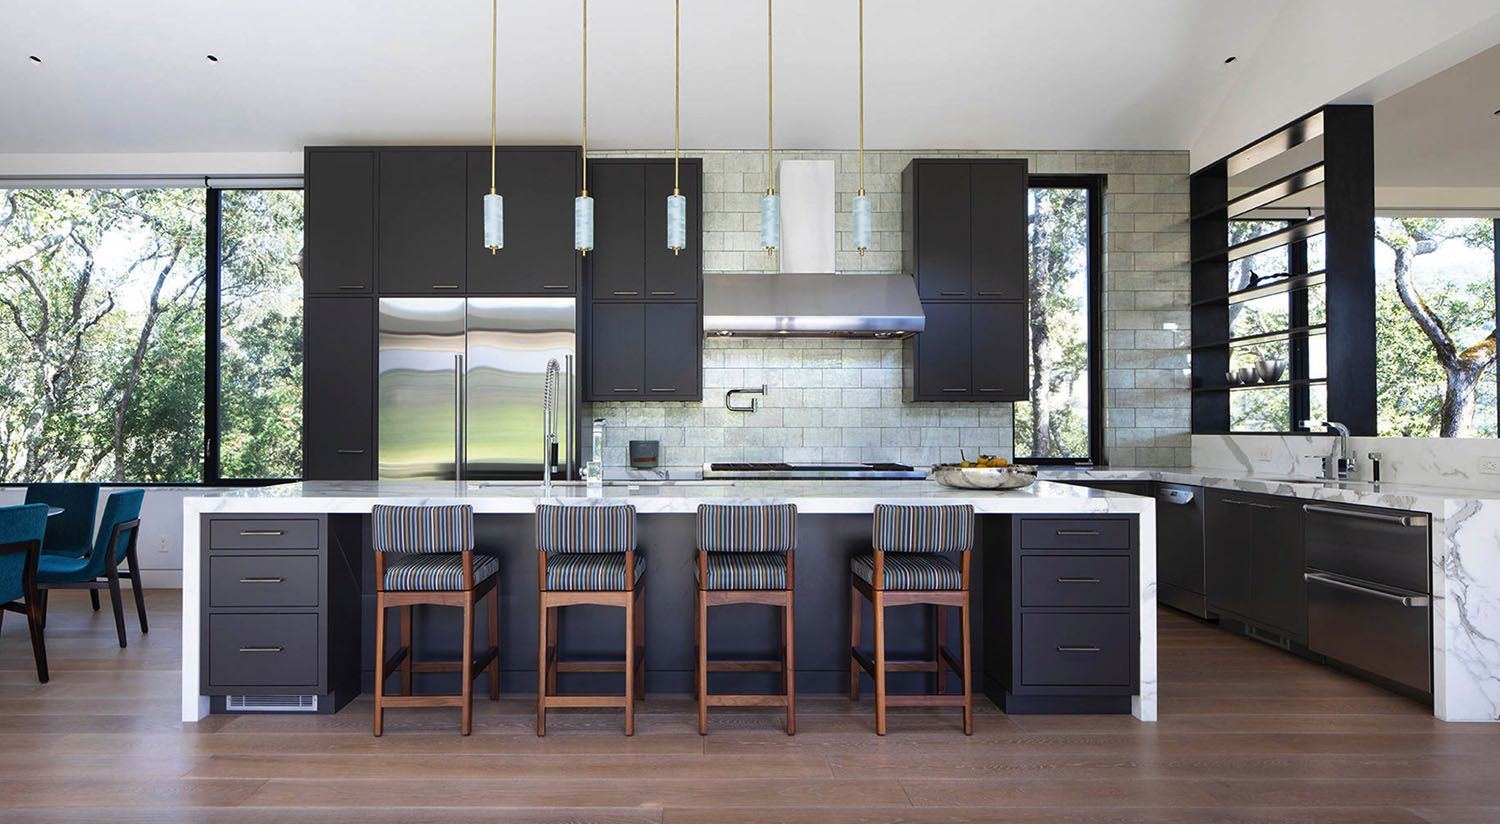 Tour An Absolutely Stunning Modern Farmhouse In Sonoma Wine Country In 2020 Modern Farmhouse Vintage House Architecture House